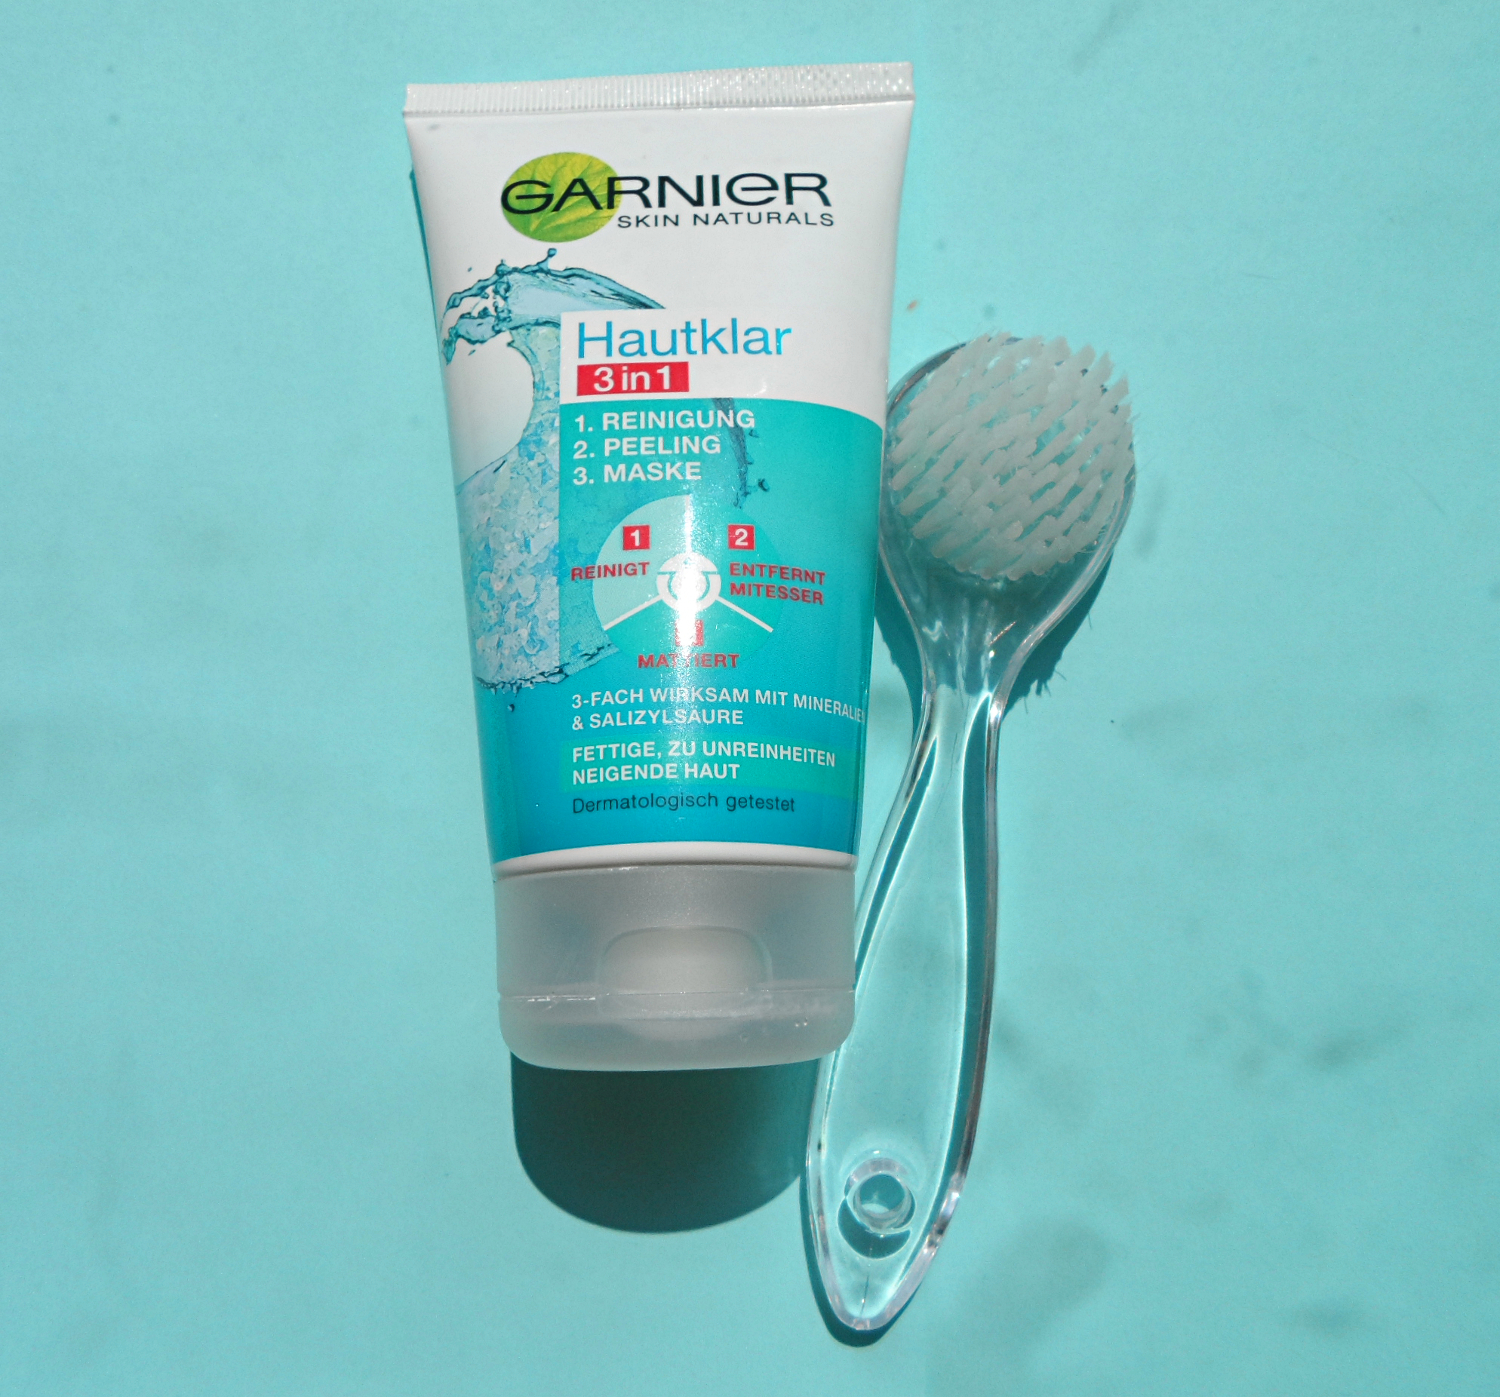 Ebelin Massage facial brush review garnier pure cleanse 3 in 1 review pictures